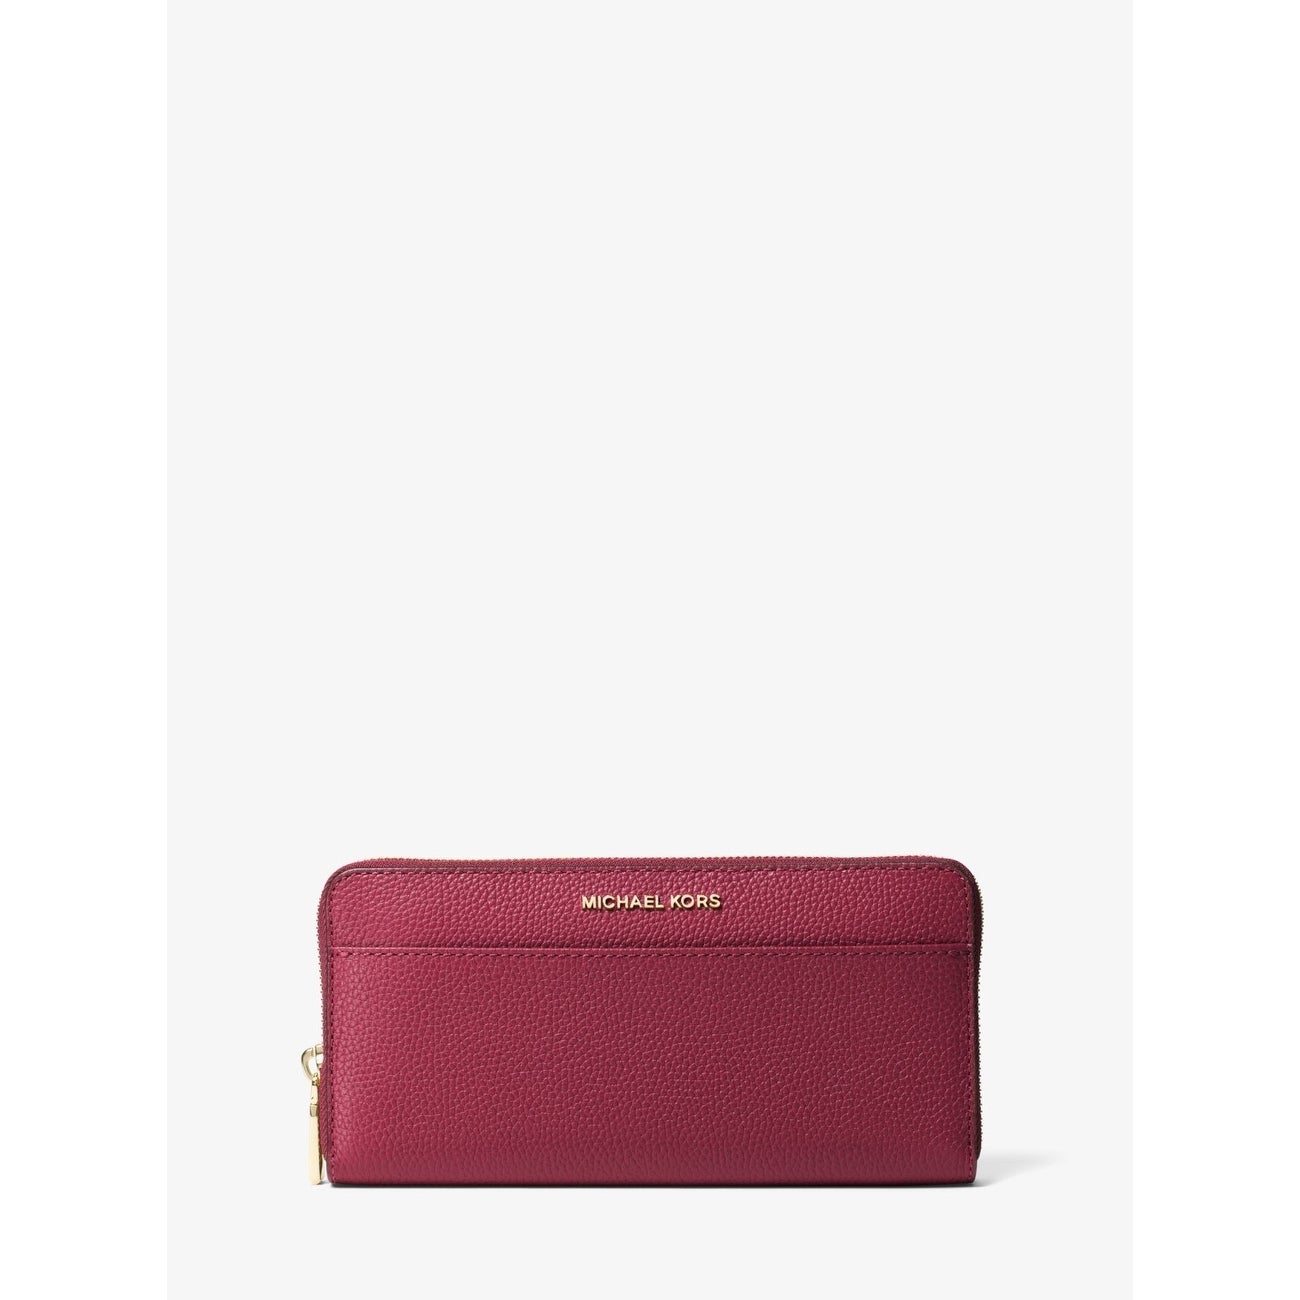 MICHAEL Michael Kors Jet Set Saffiano Leather Continental Wallet Mulberry -  Free Shipping Today - Overstock.com - 25438777